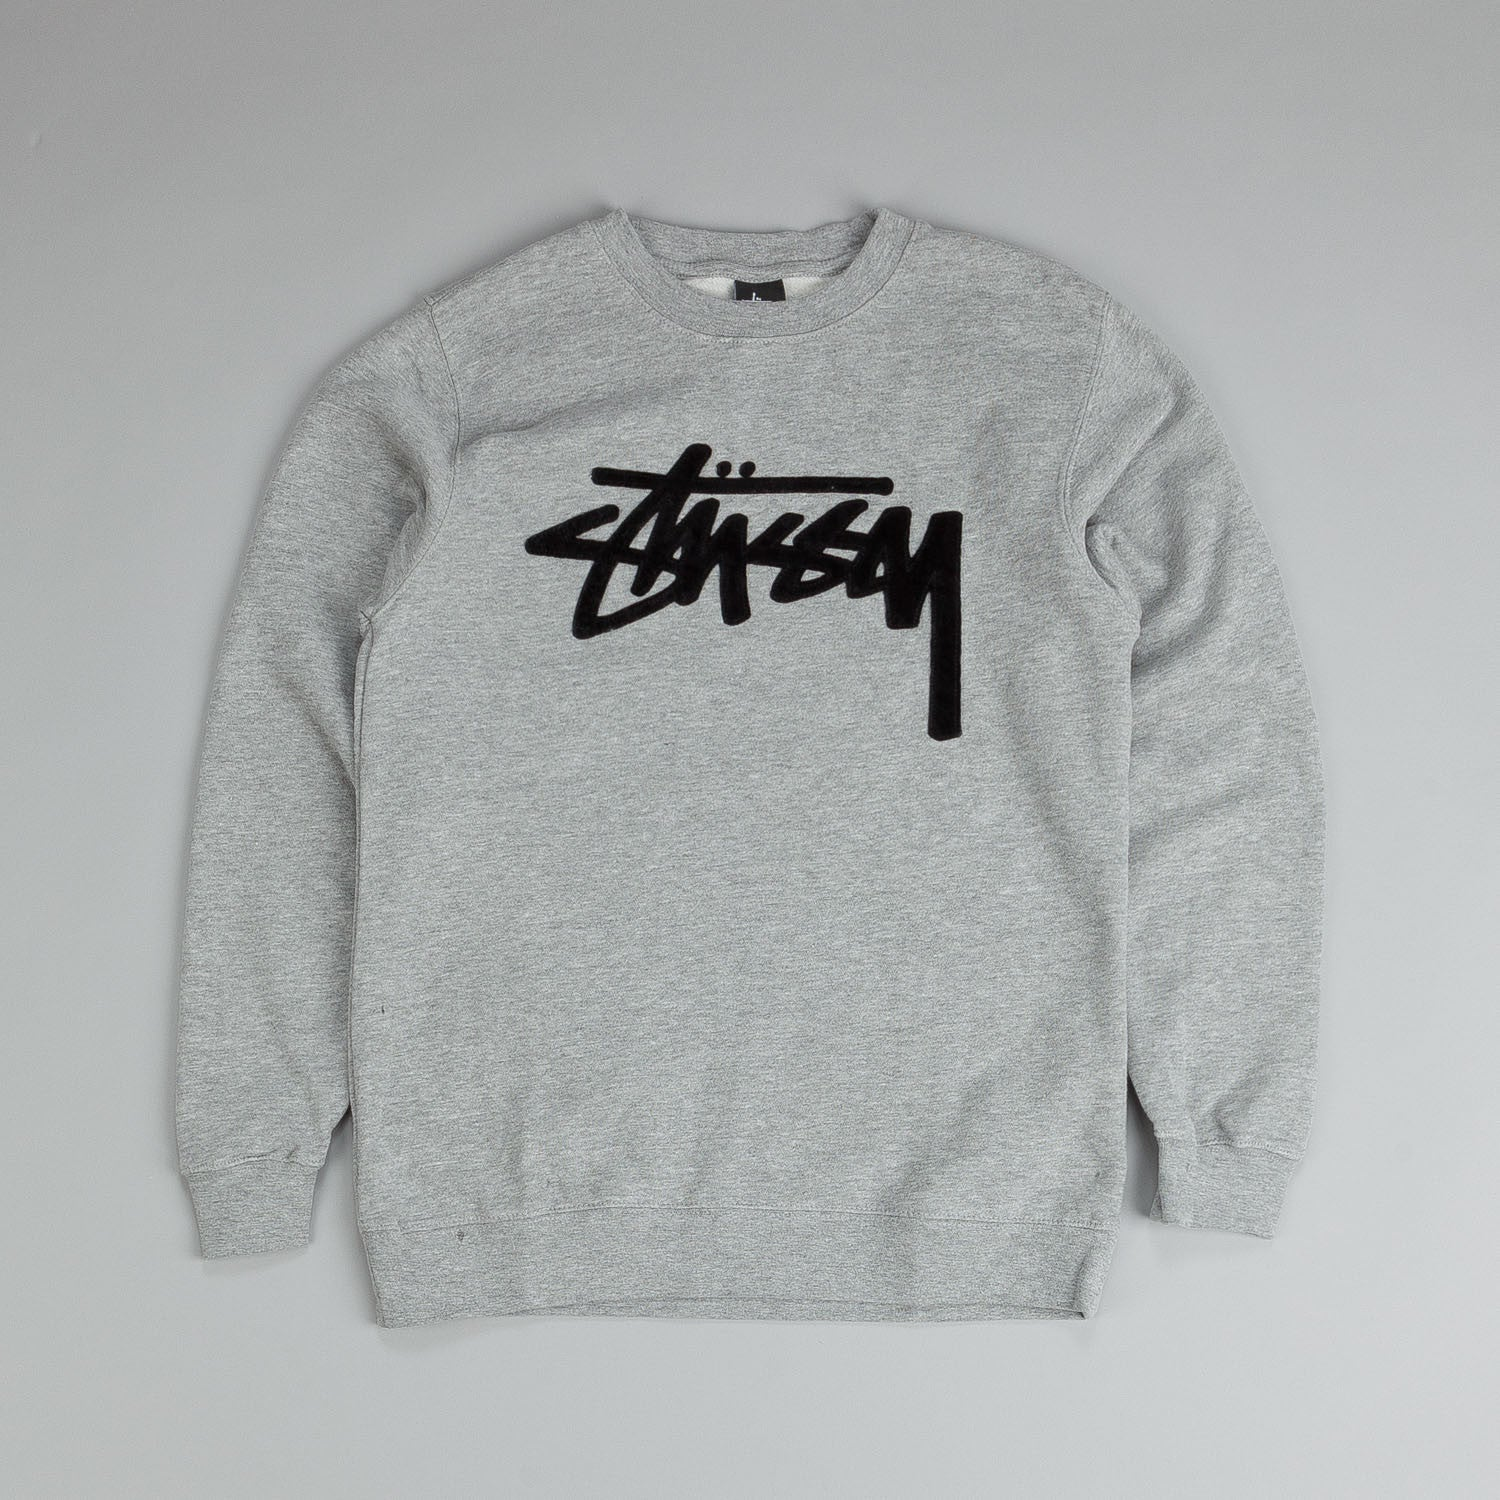 Stussy Velvet Stock Crew Sweatshirt Grey Heather